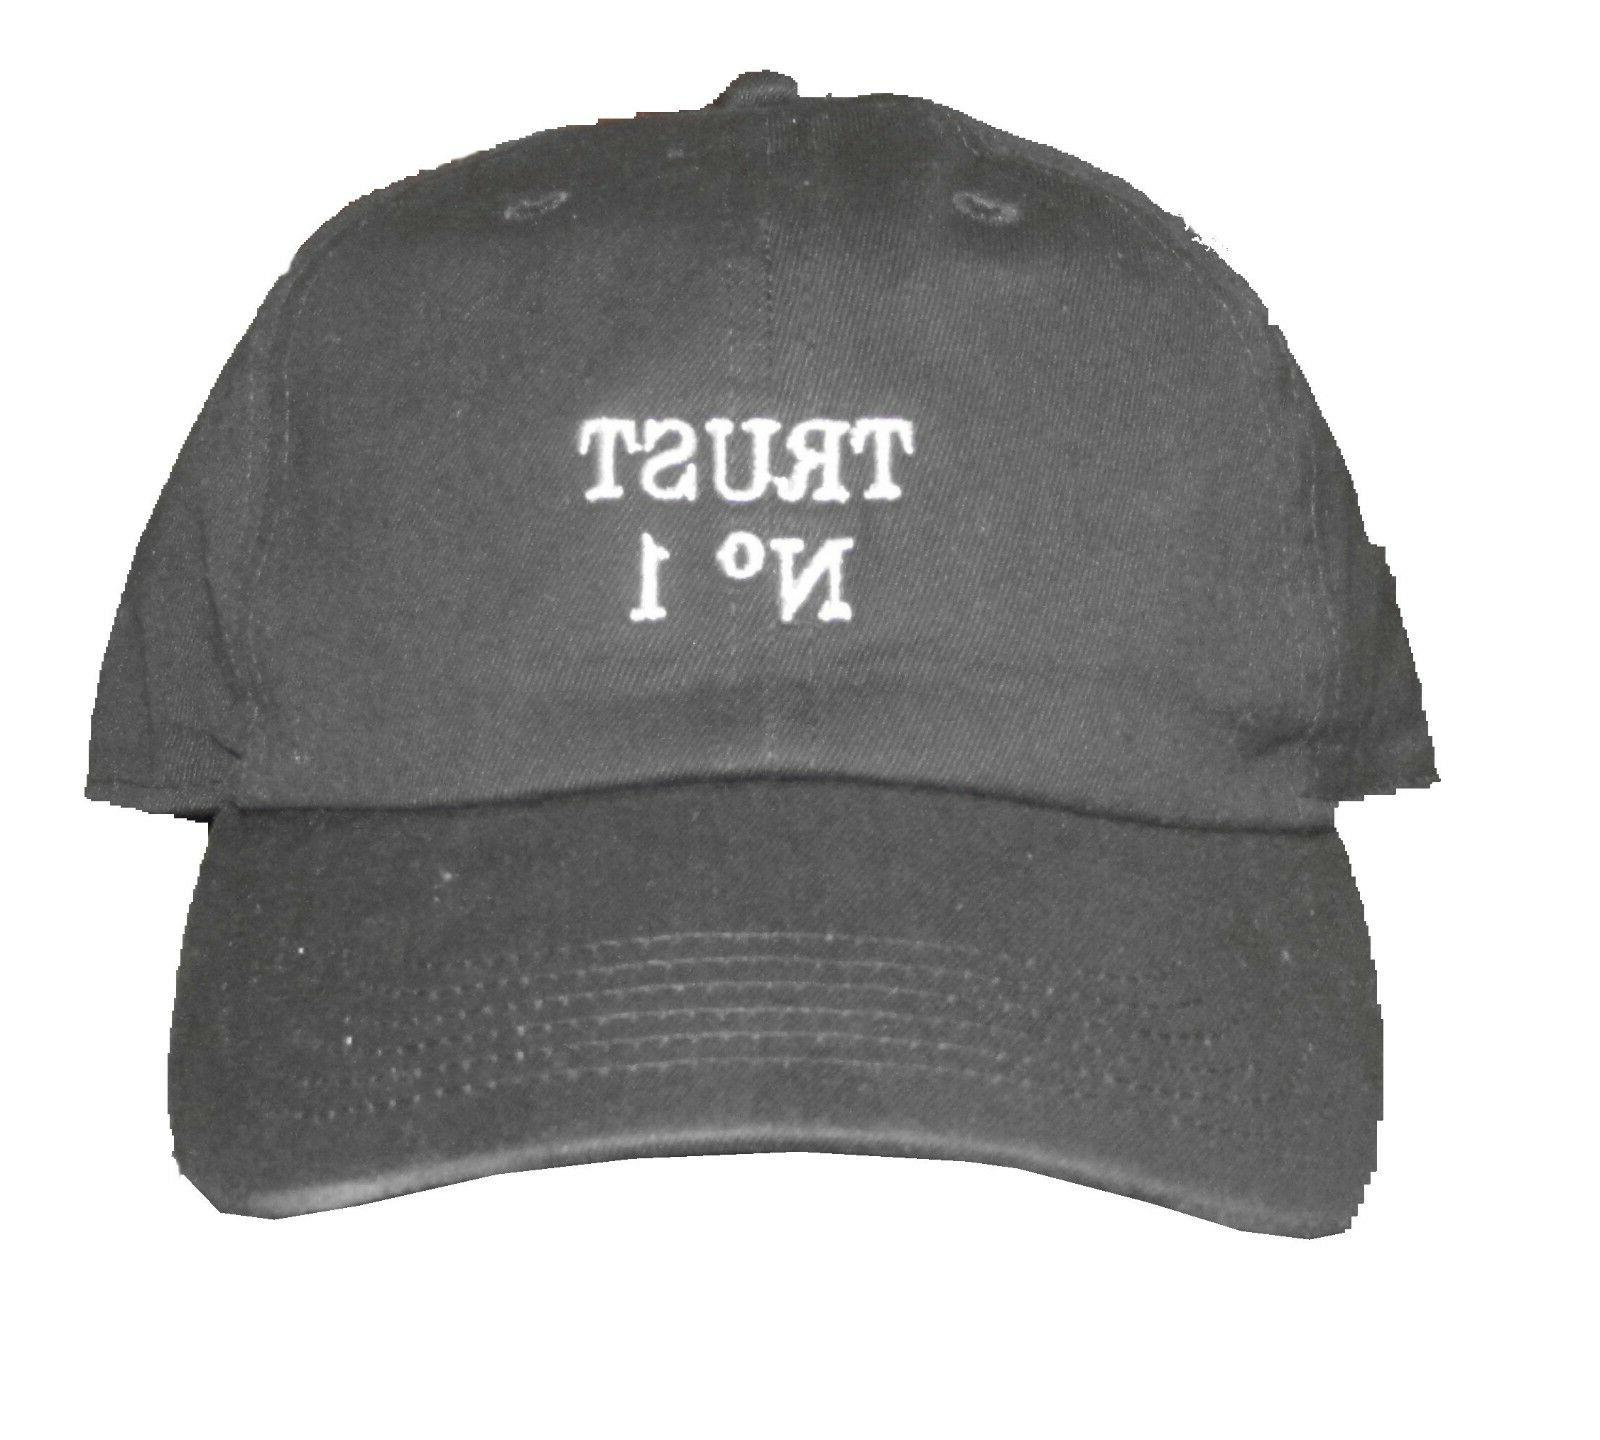 Dad Hat Baseball Trust Cotton Twill tone colors